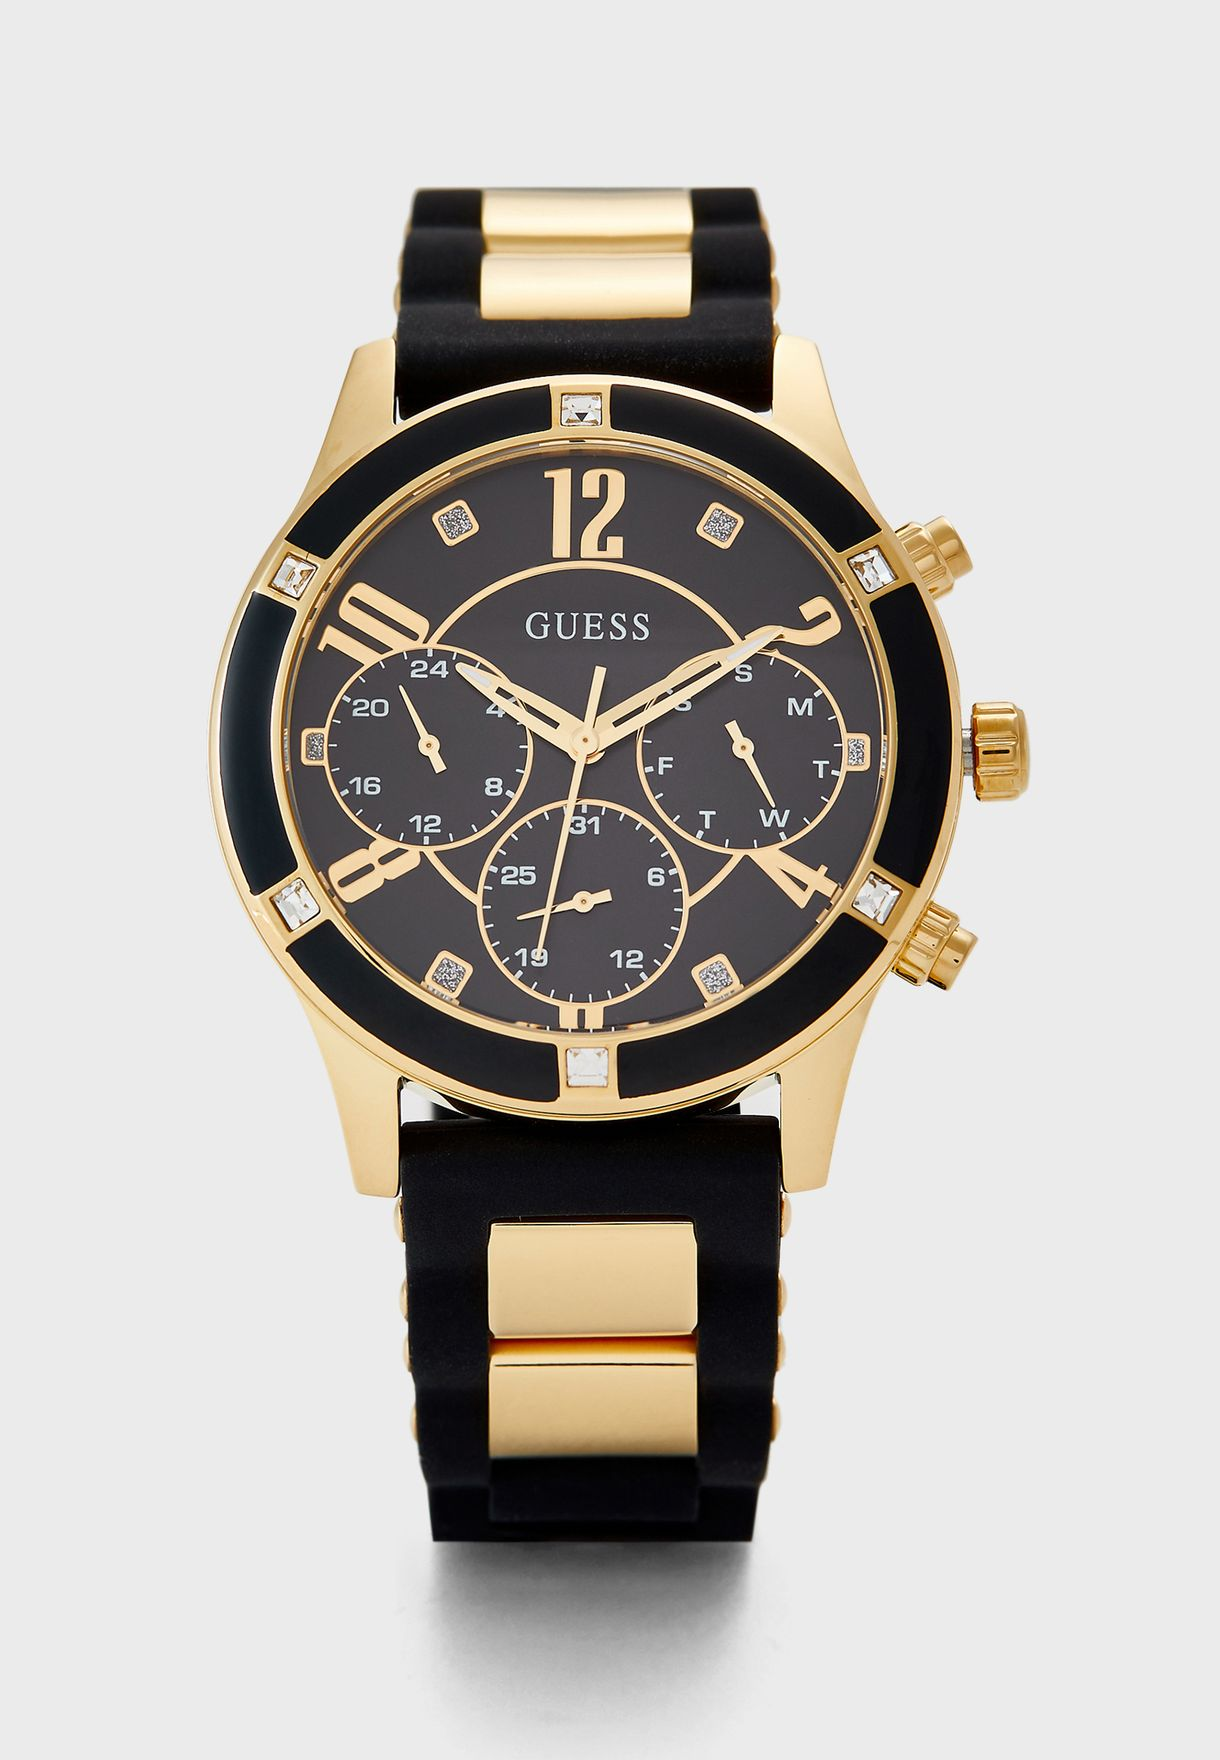 Sun Chronograph Watch